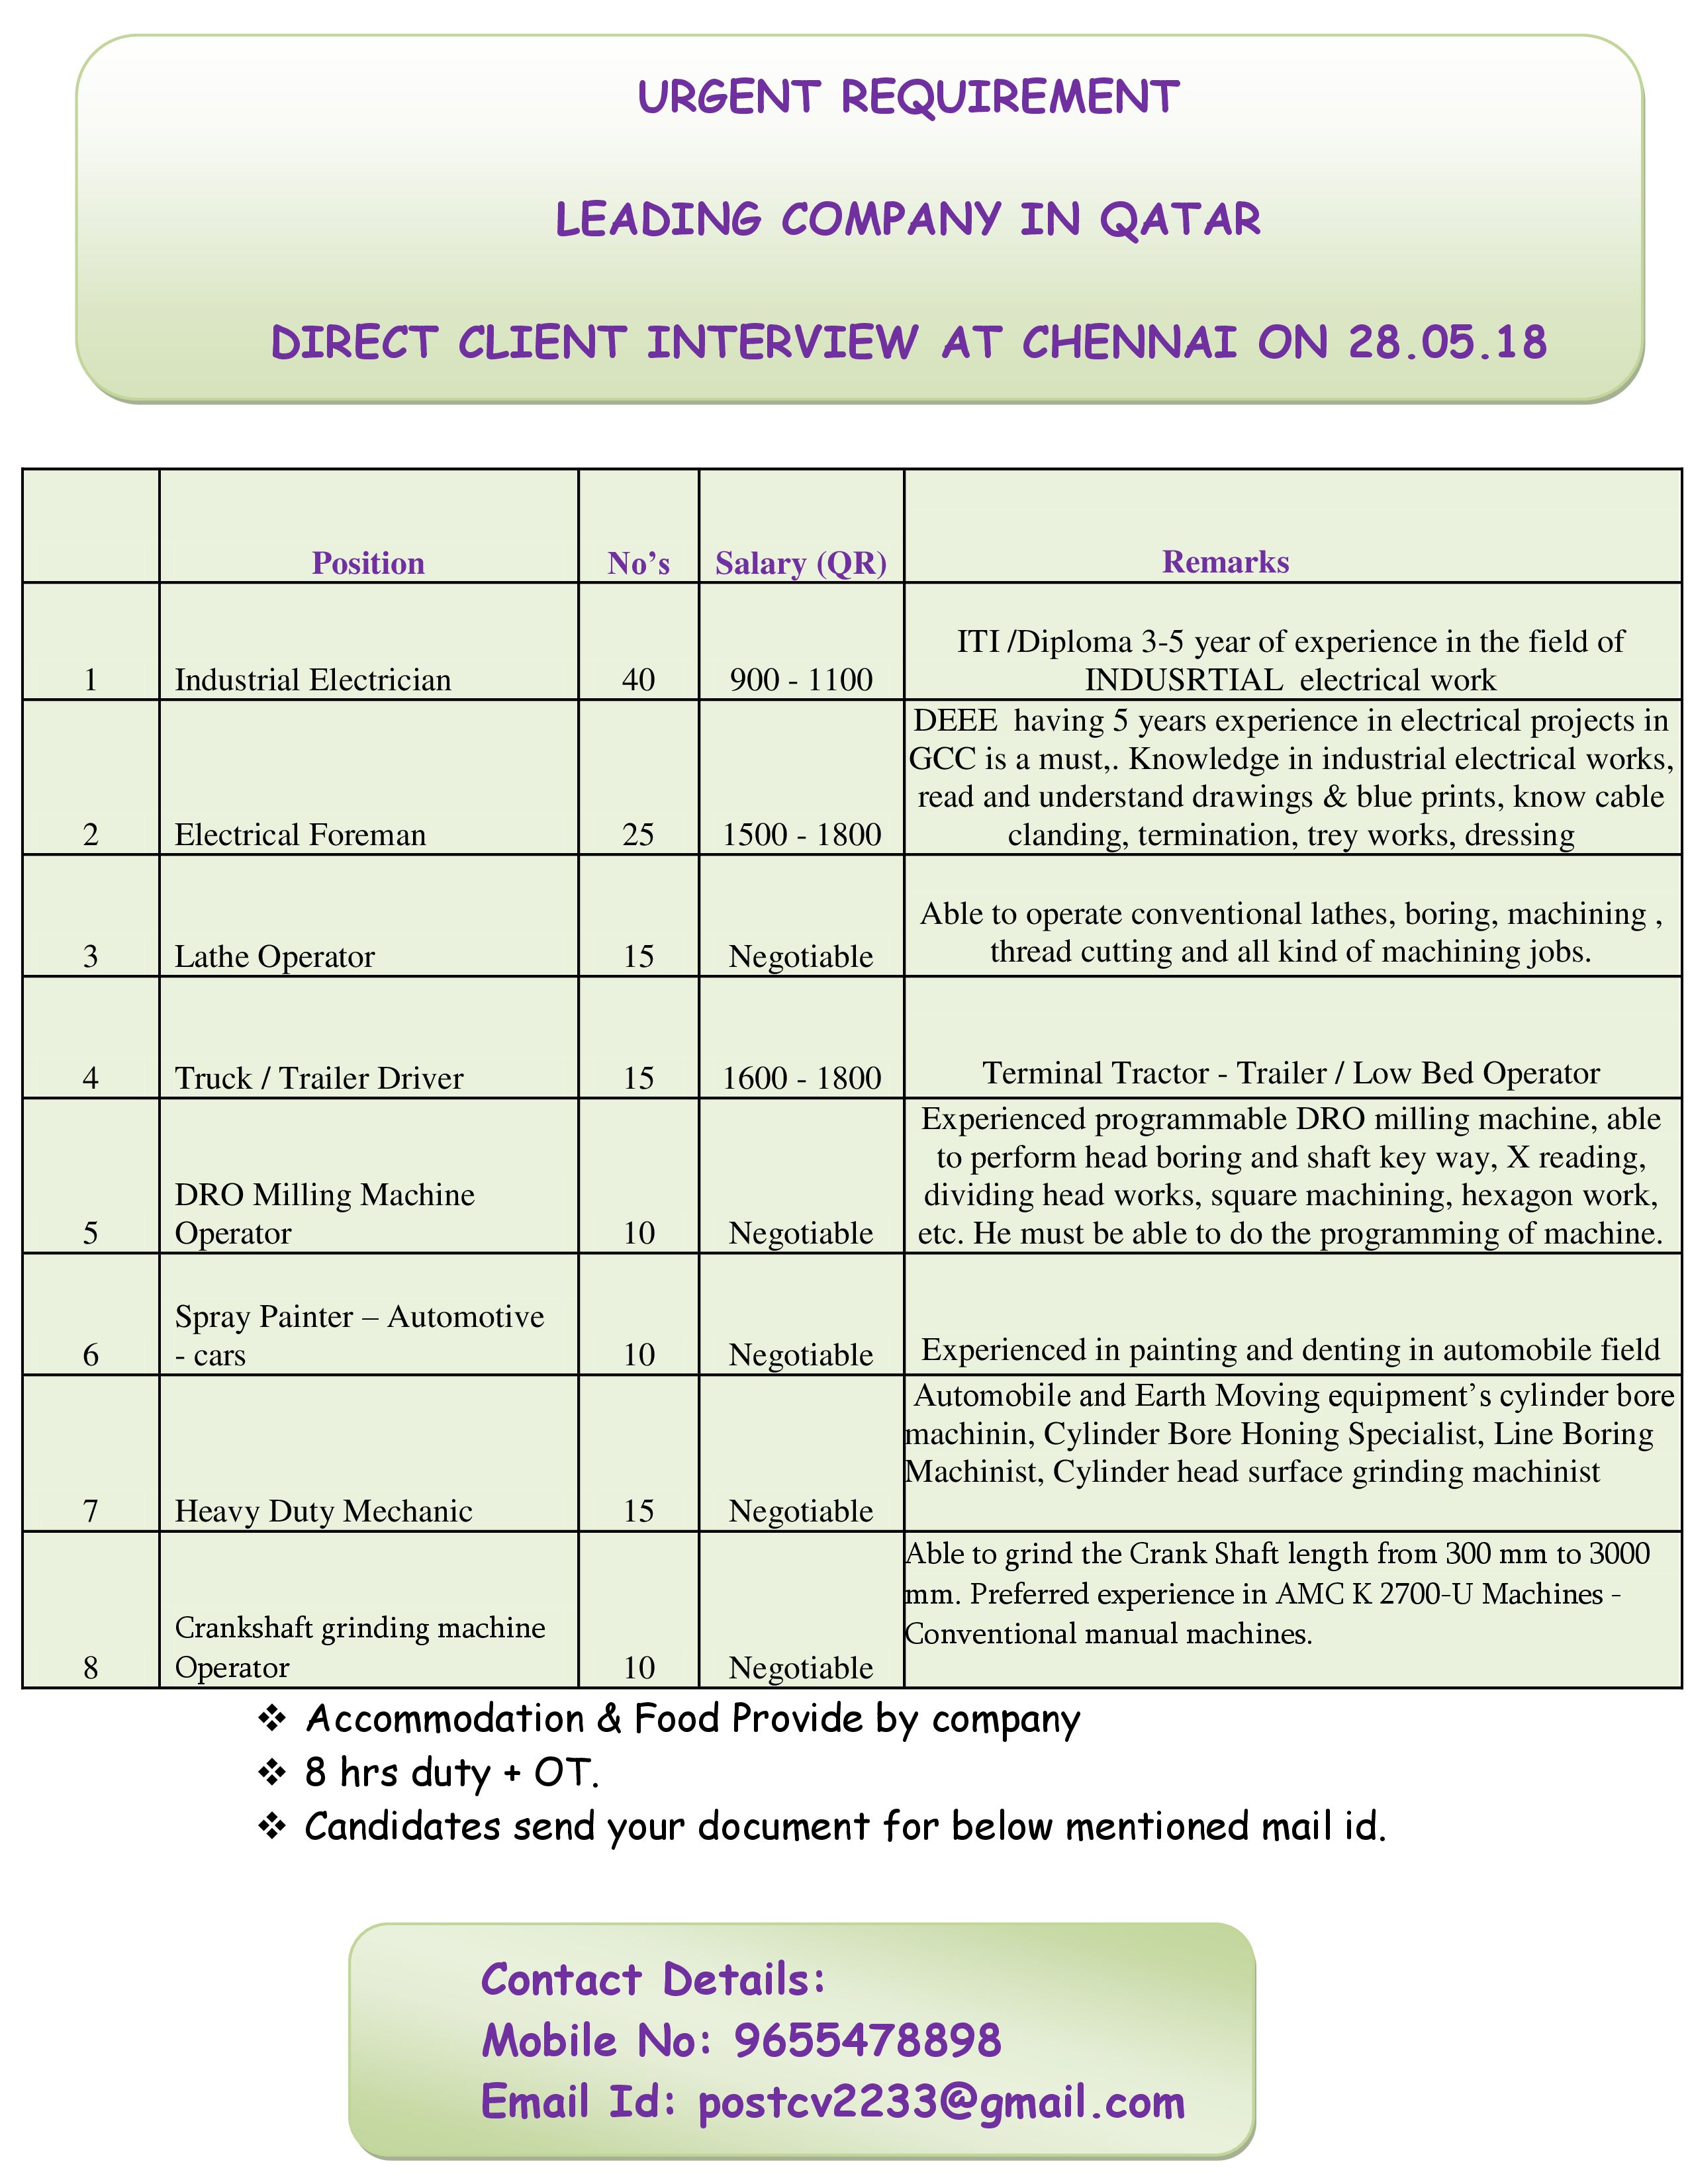 URGENT REQUIREMENT LEADING COMPANY IN QATAR DIRECT CLIENT INTERVIEW